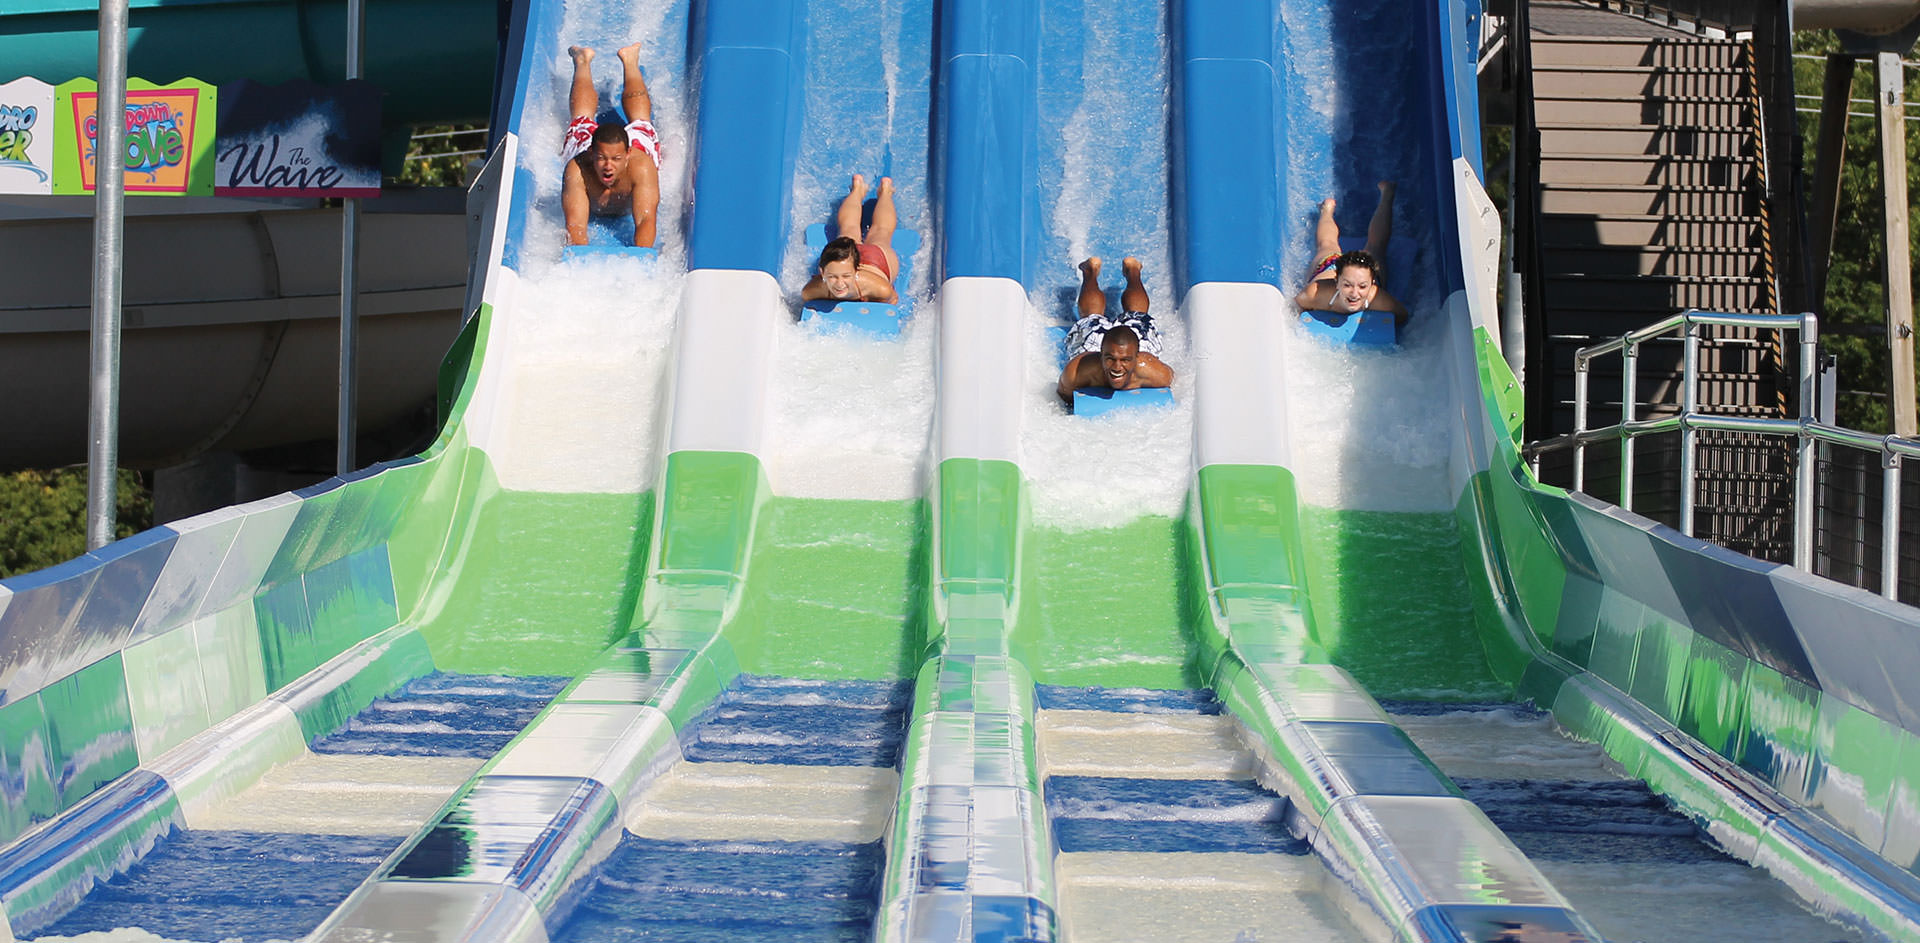 Four adults racing down water slides